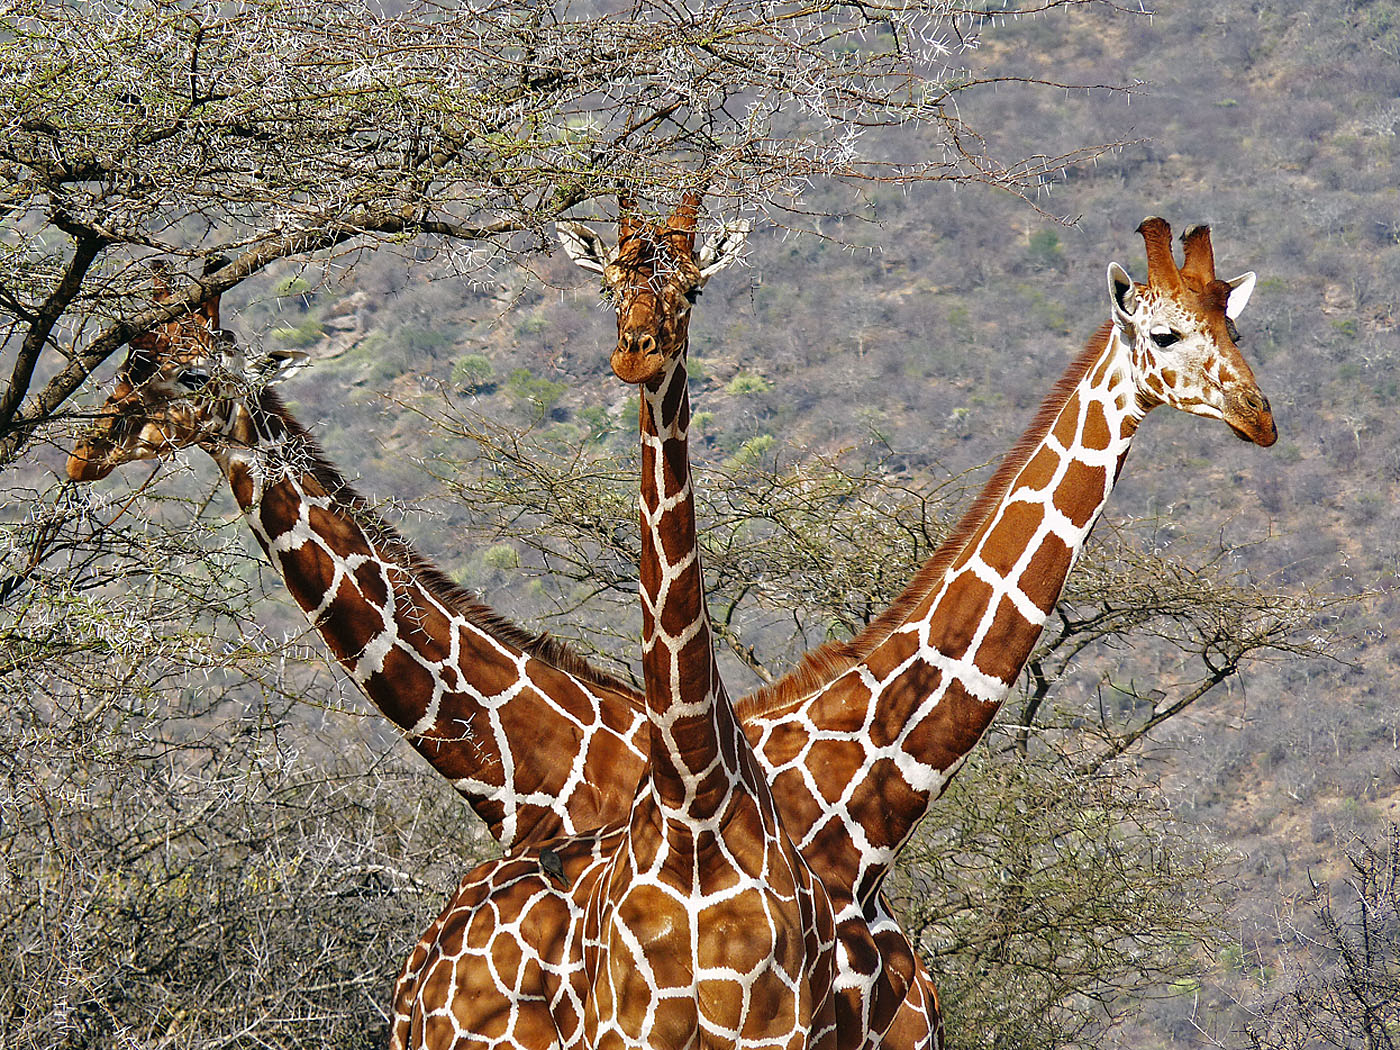 Three Headed Giraffe